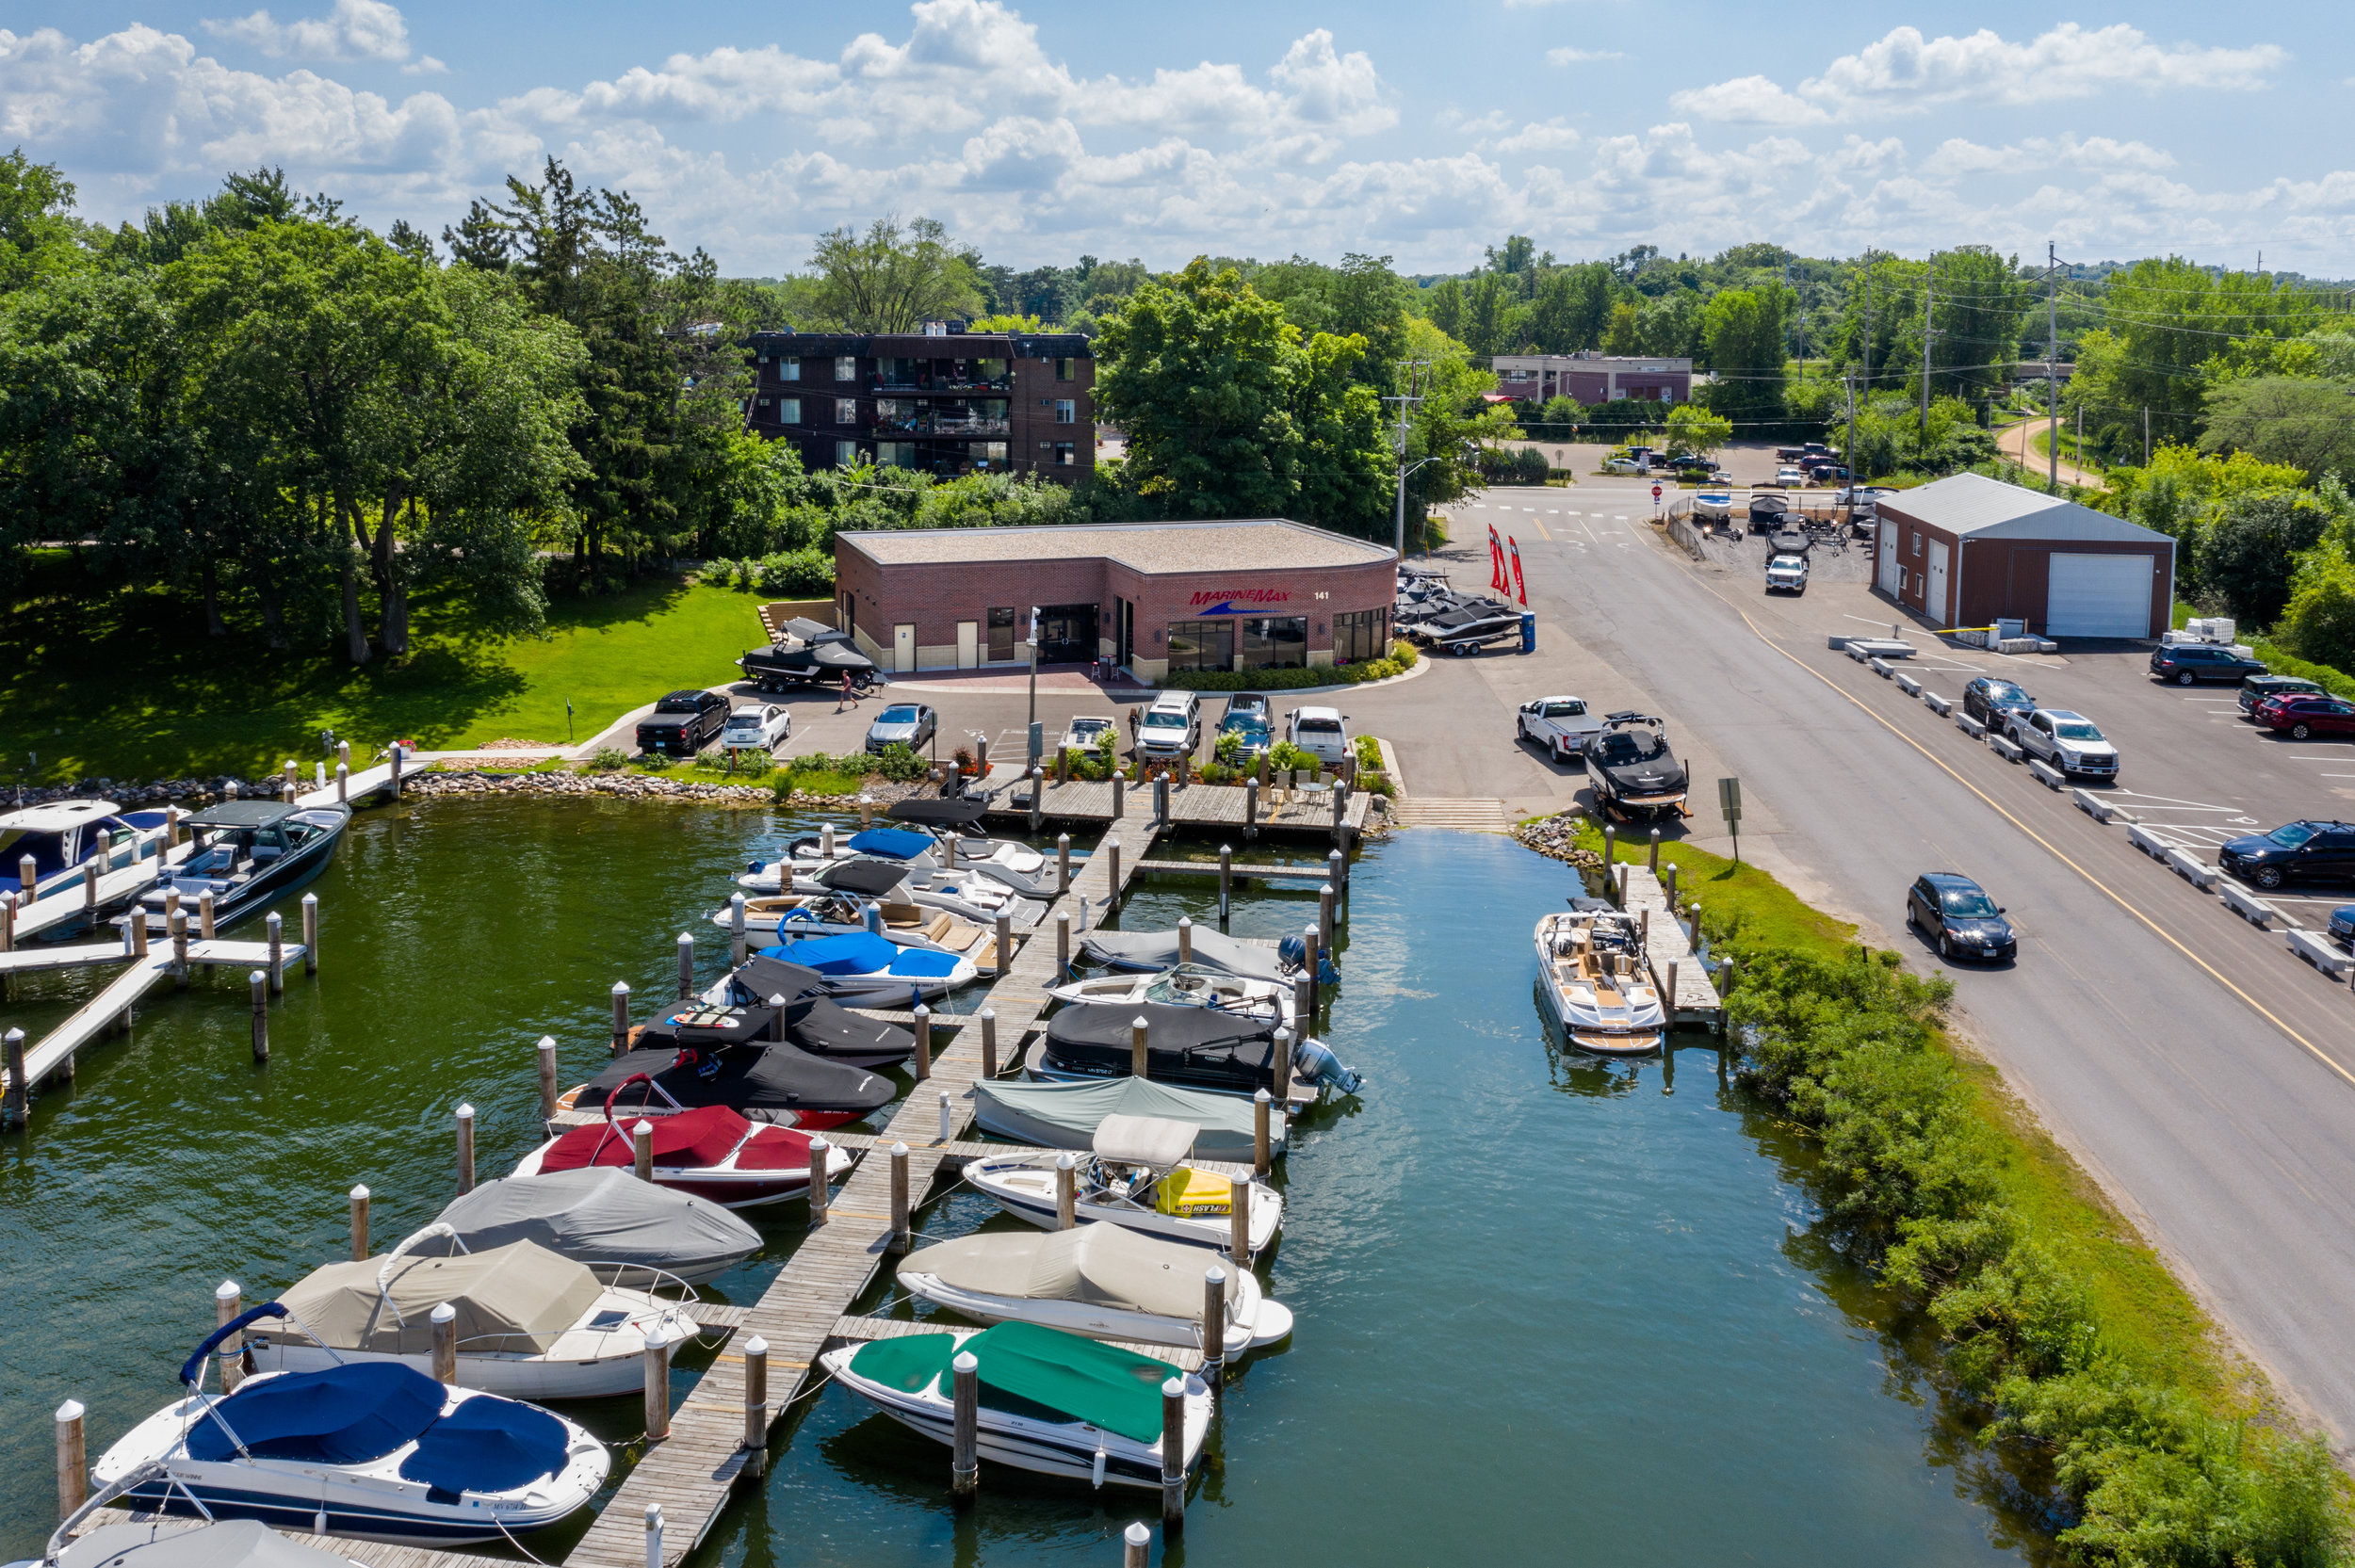 - Walking distance from Excelsior's many restaurants, and just minutes away from Big Island and Wayzata by boat.